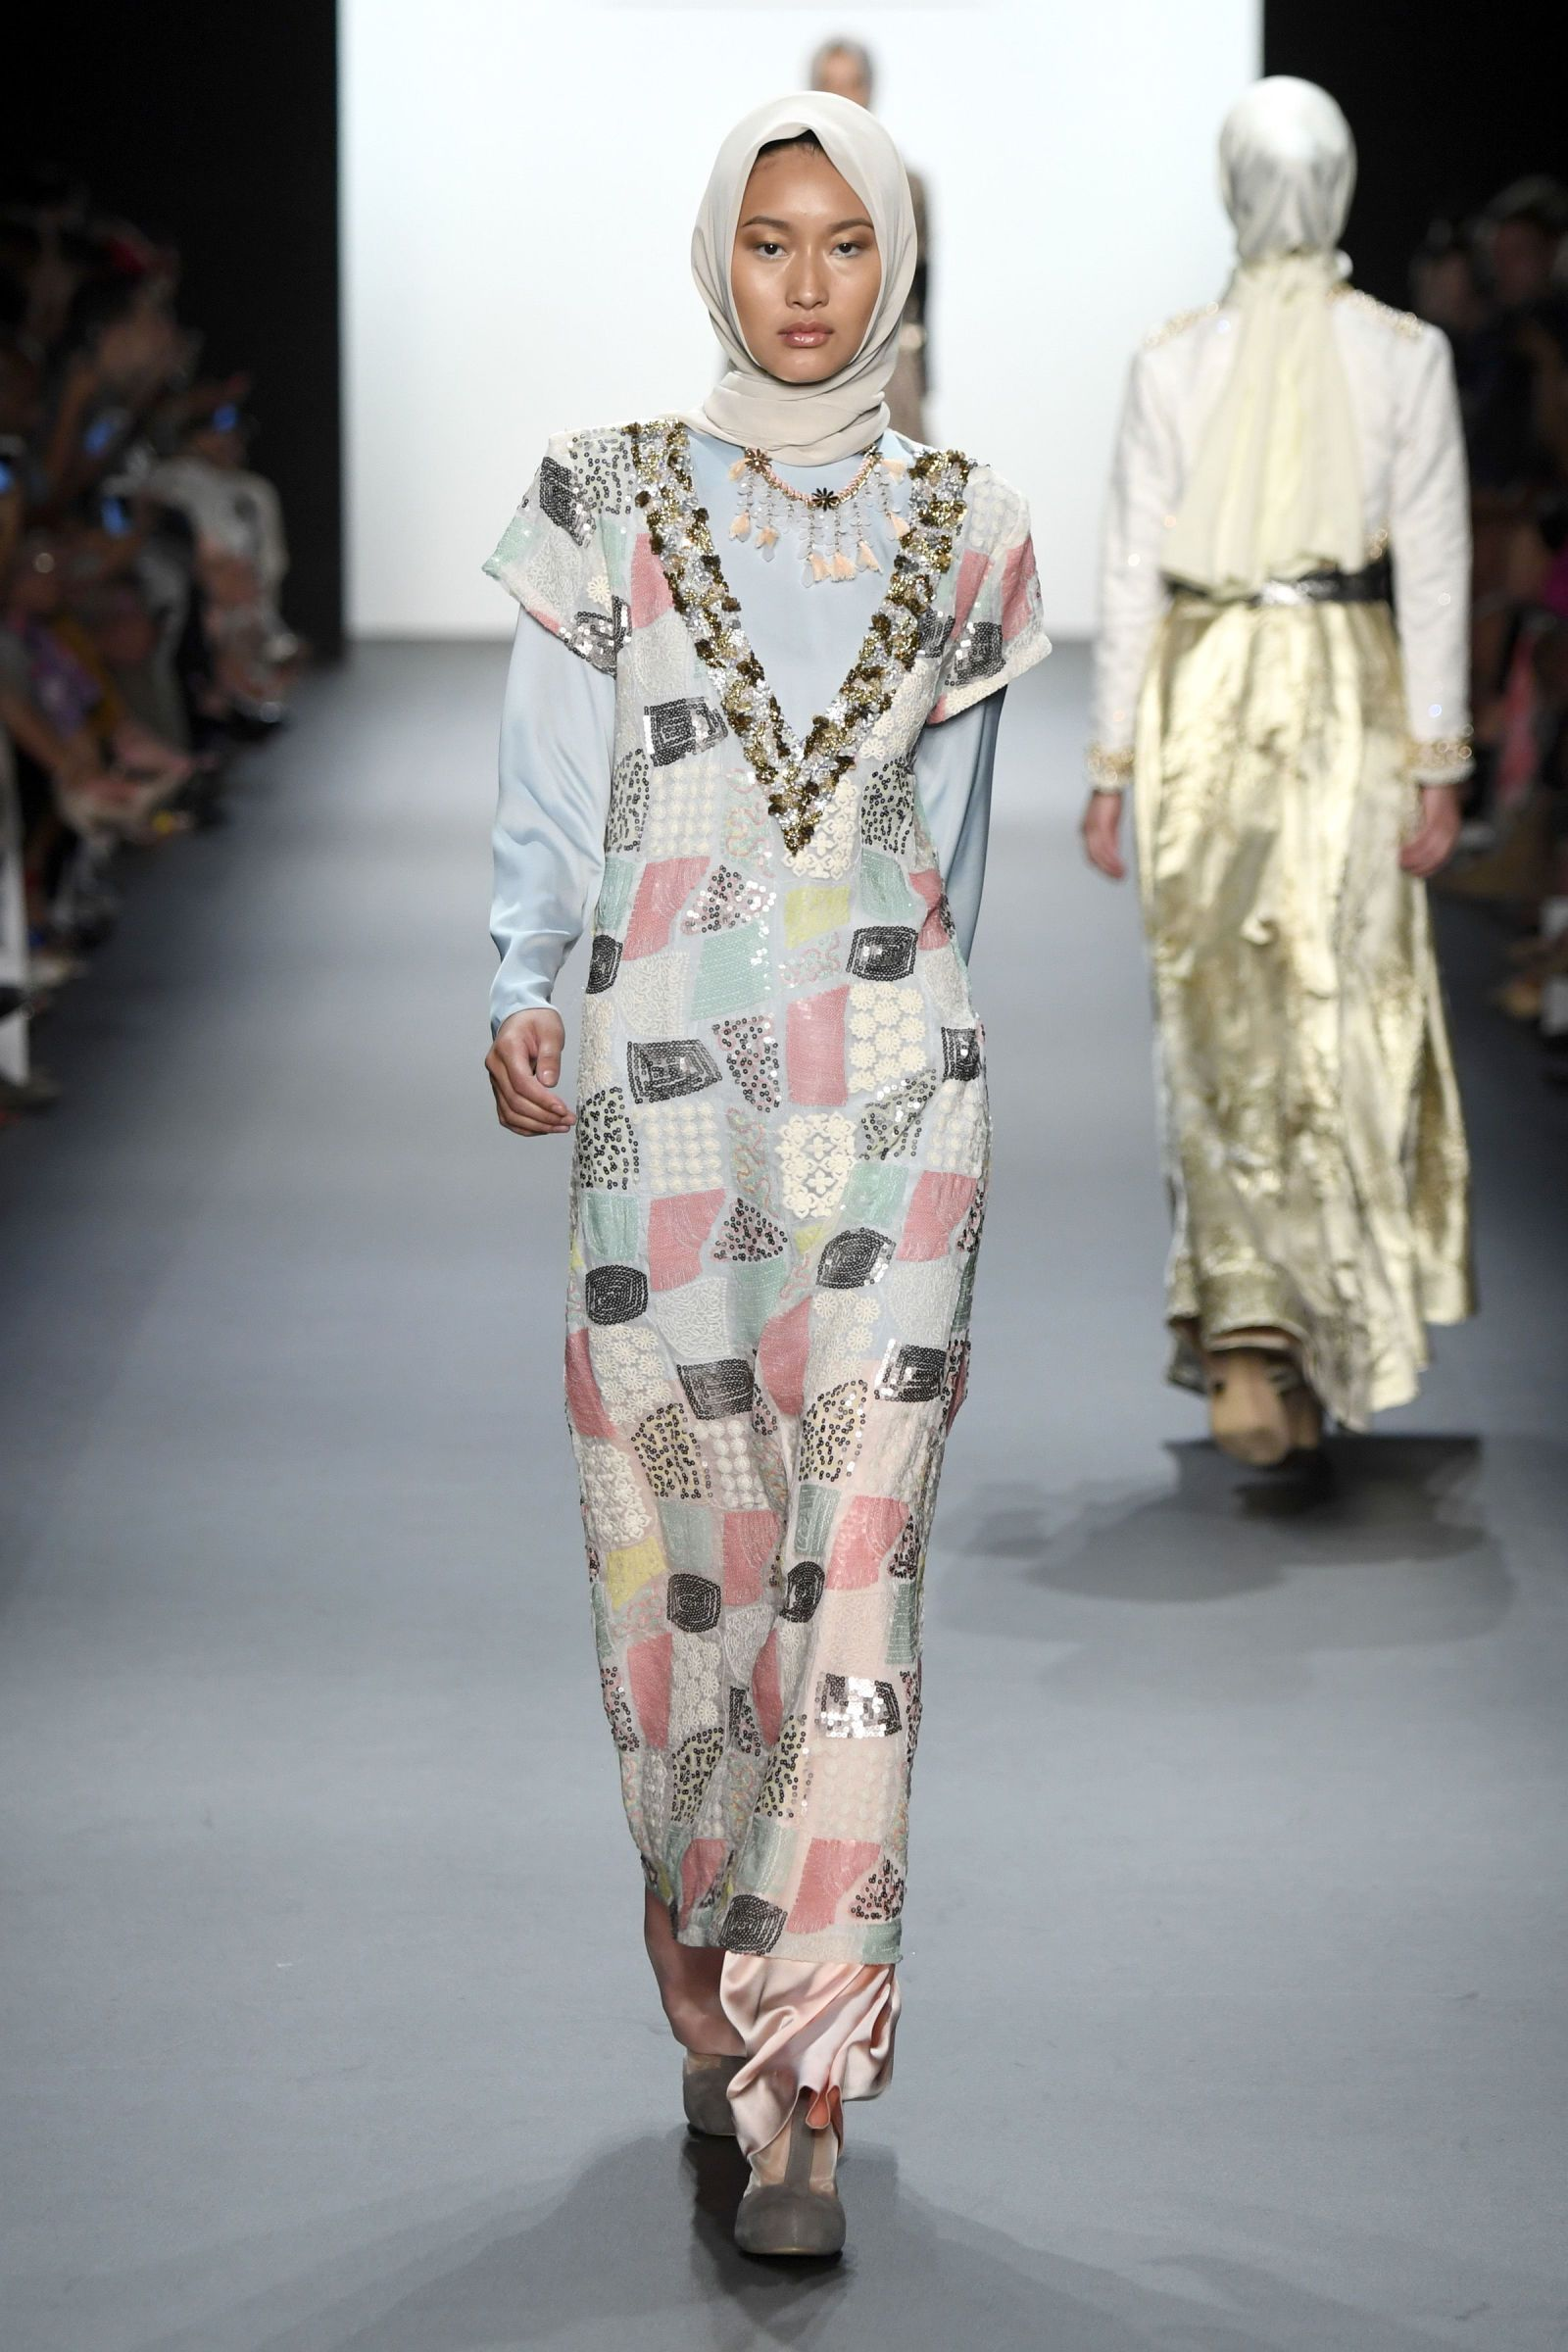 Anniesa Hasibuan Becomes First Designer to Present NYFW Collection